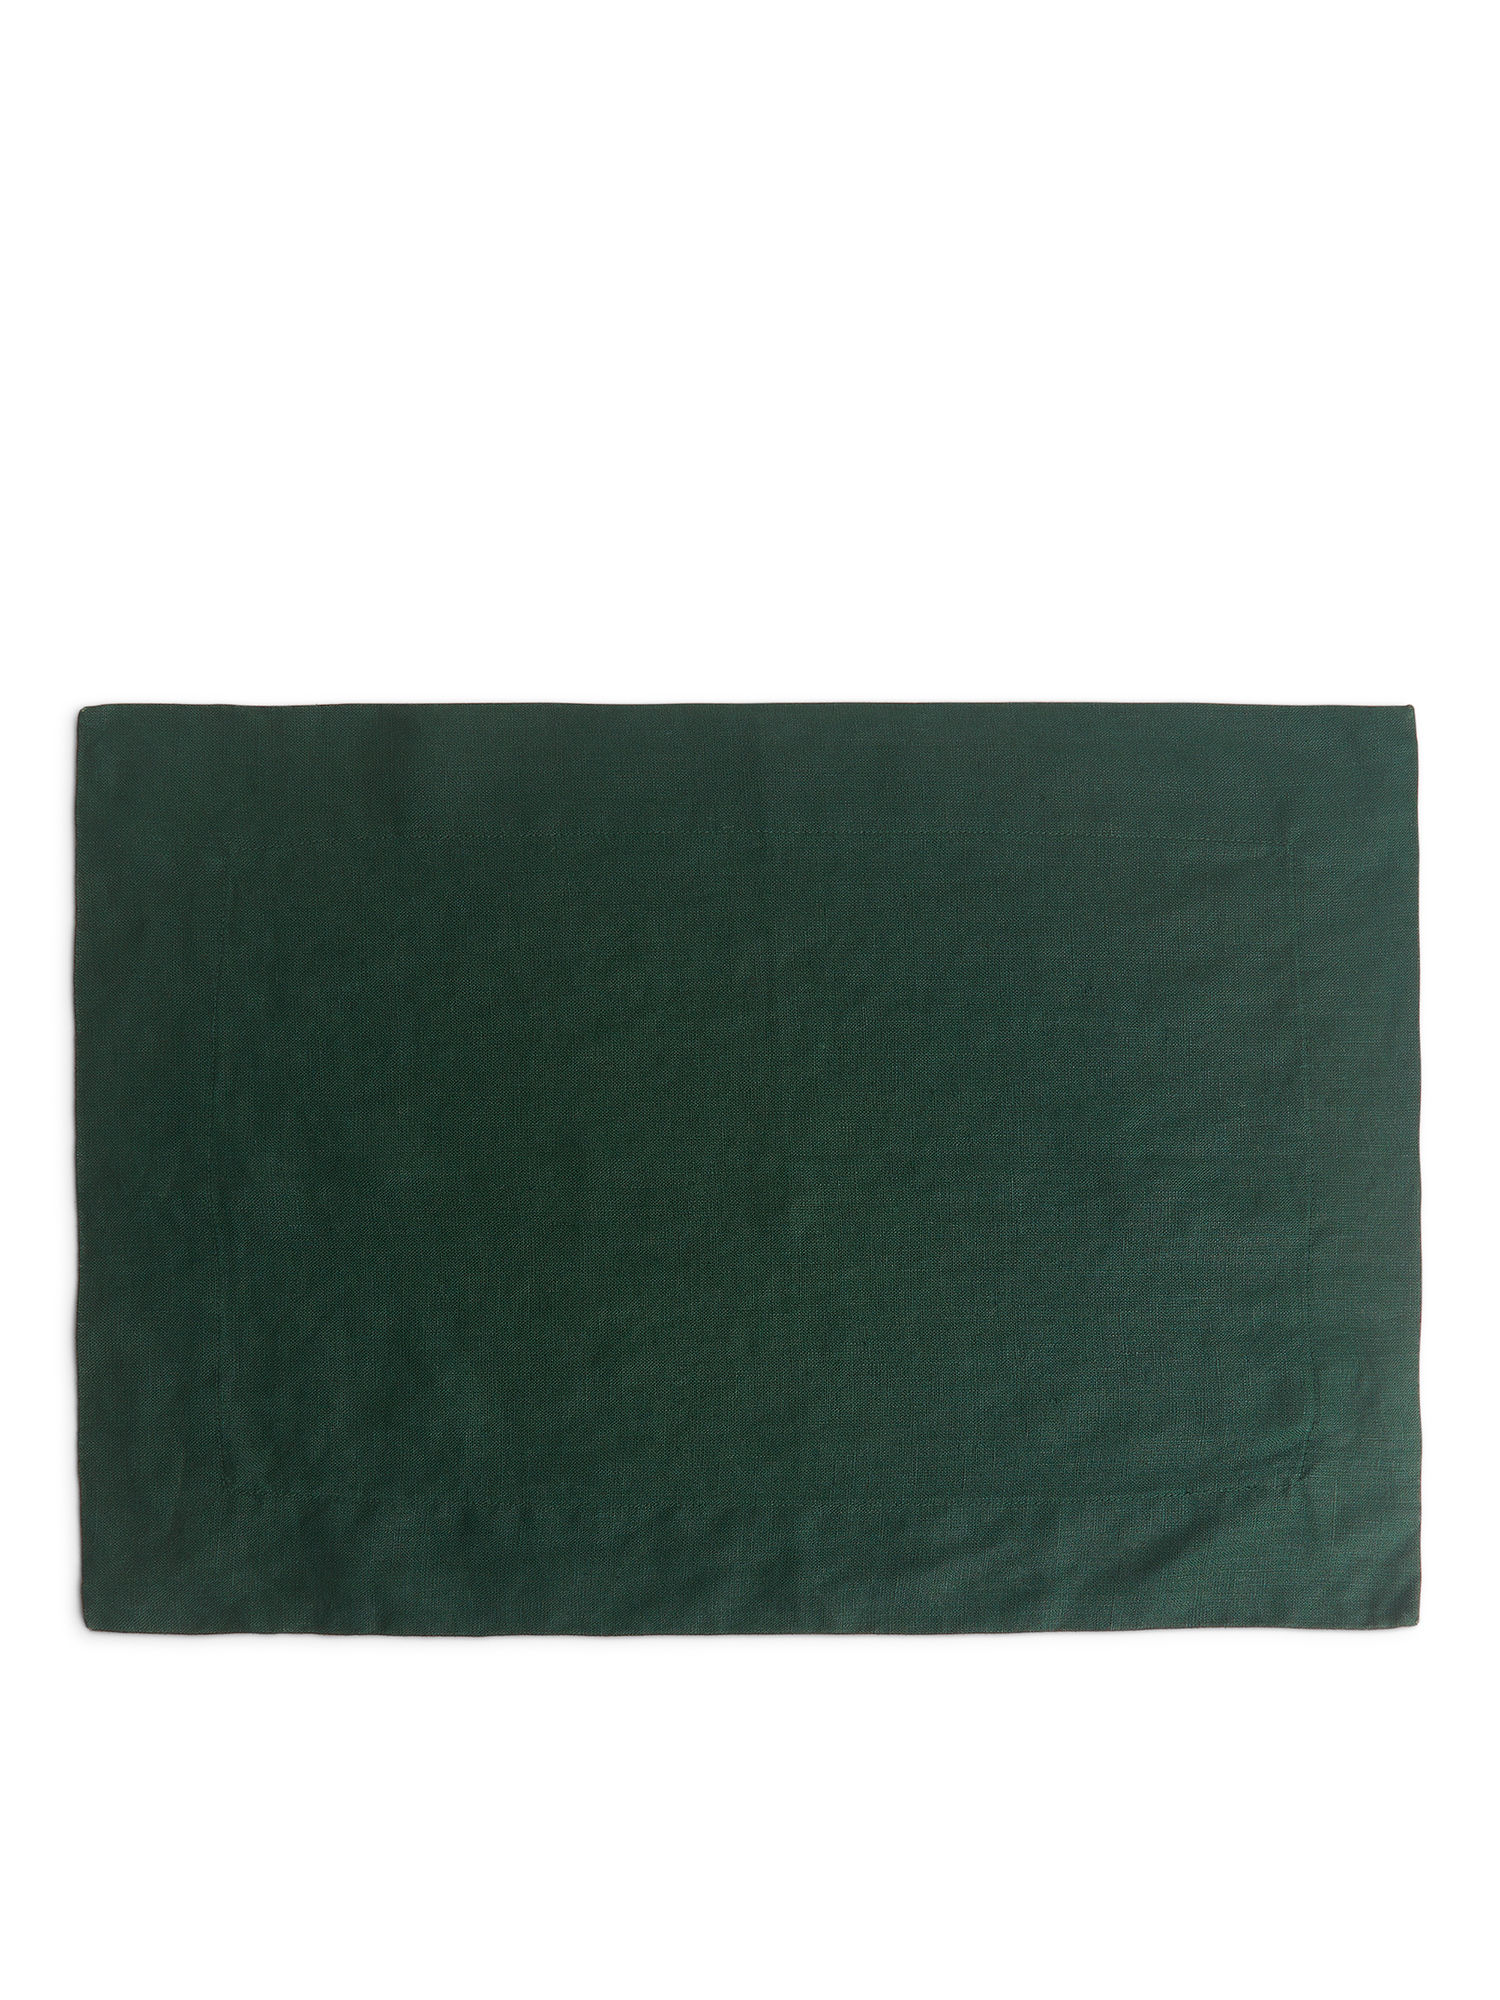 Fabric Swatch image of Arket linen placemat in green